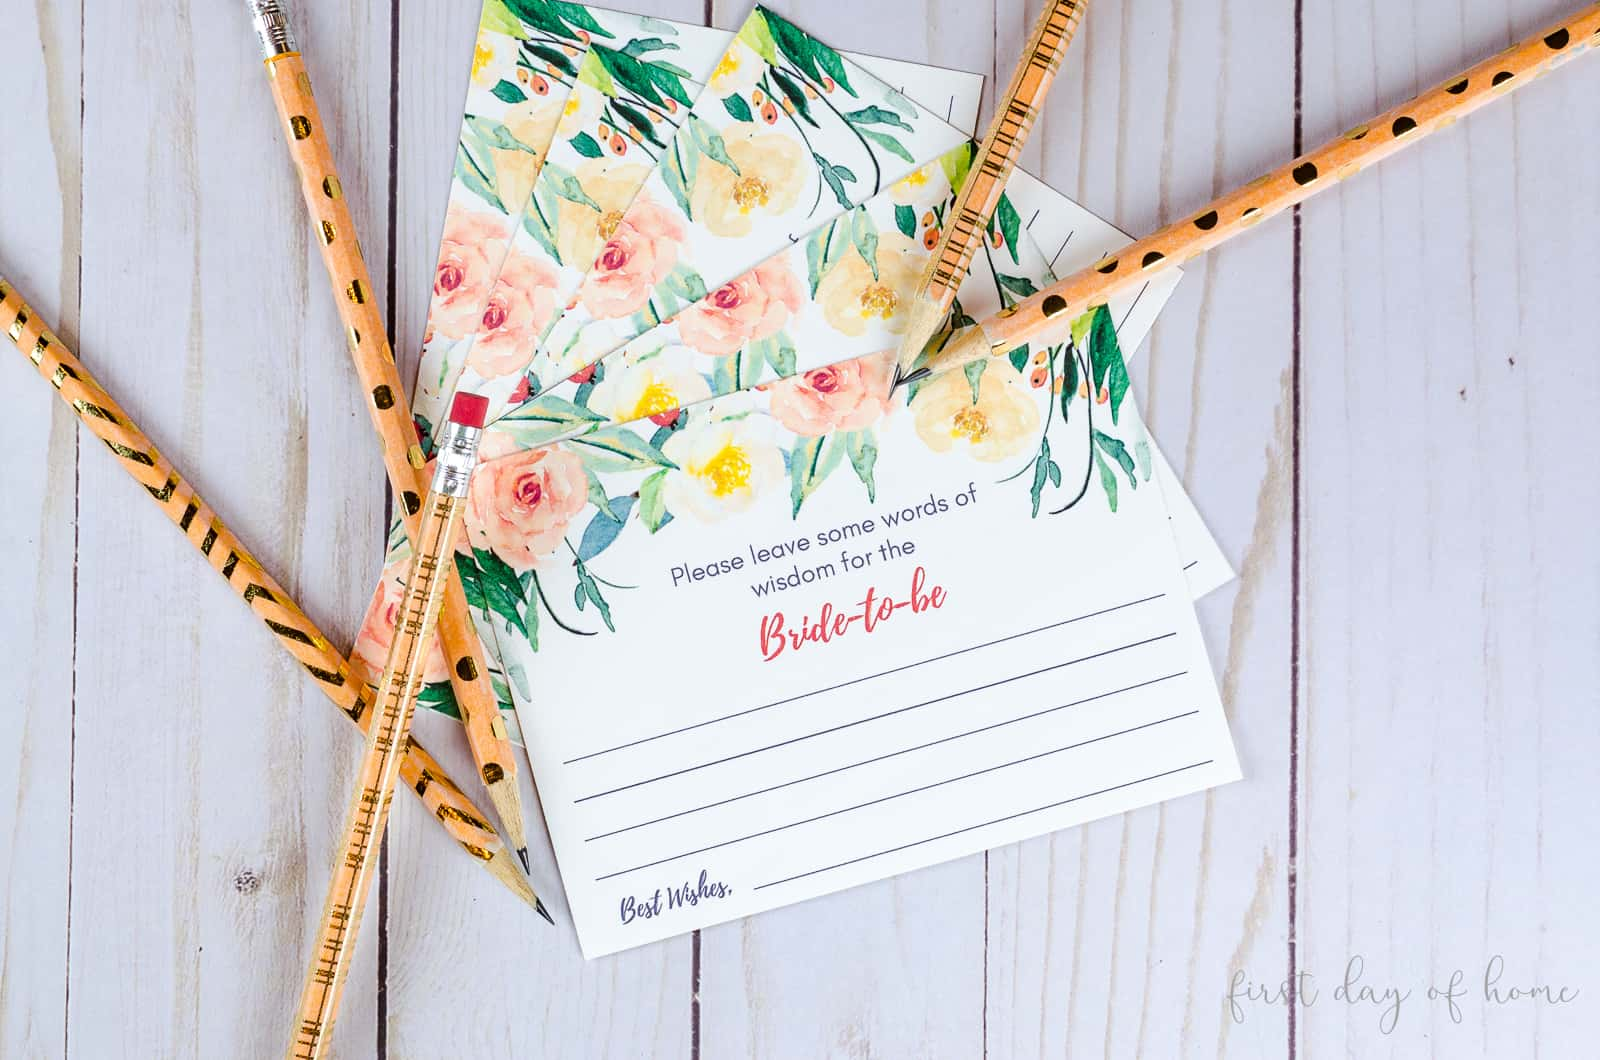 Free bridal shower advice cards for the bride-to-be and happy couple